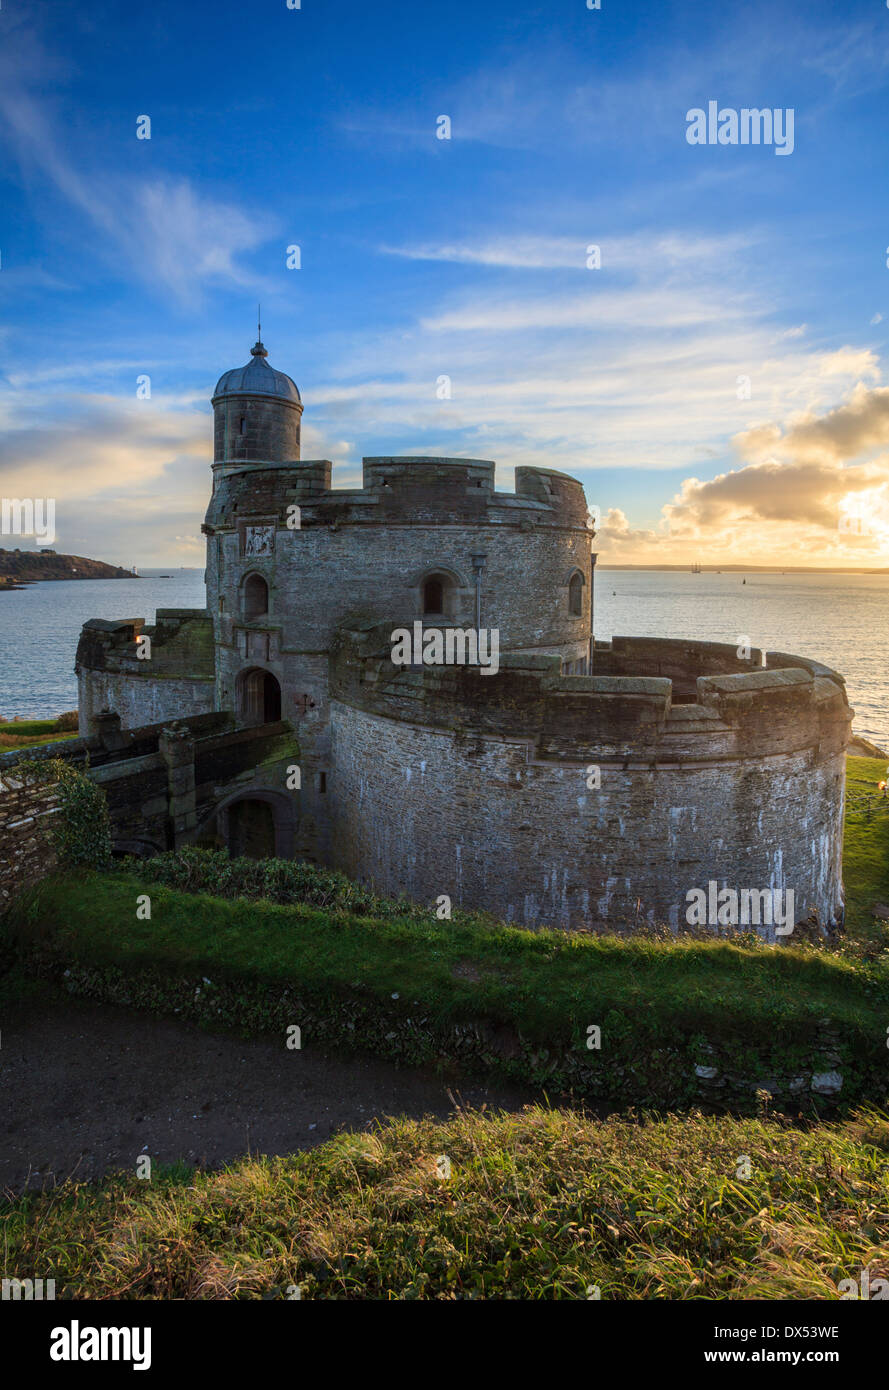 St Mawes Castle captured at sunset - Stock Image